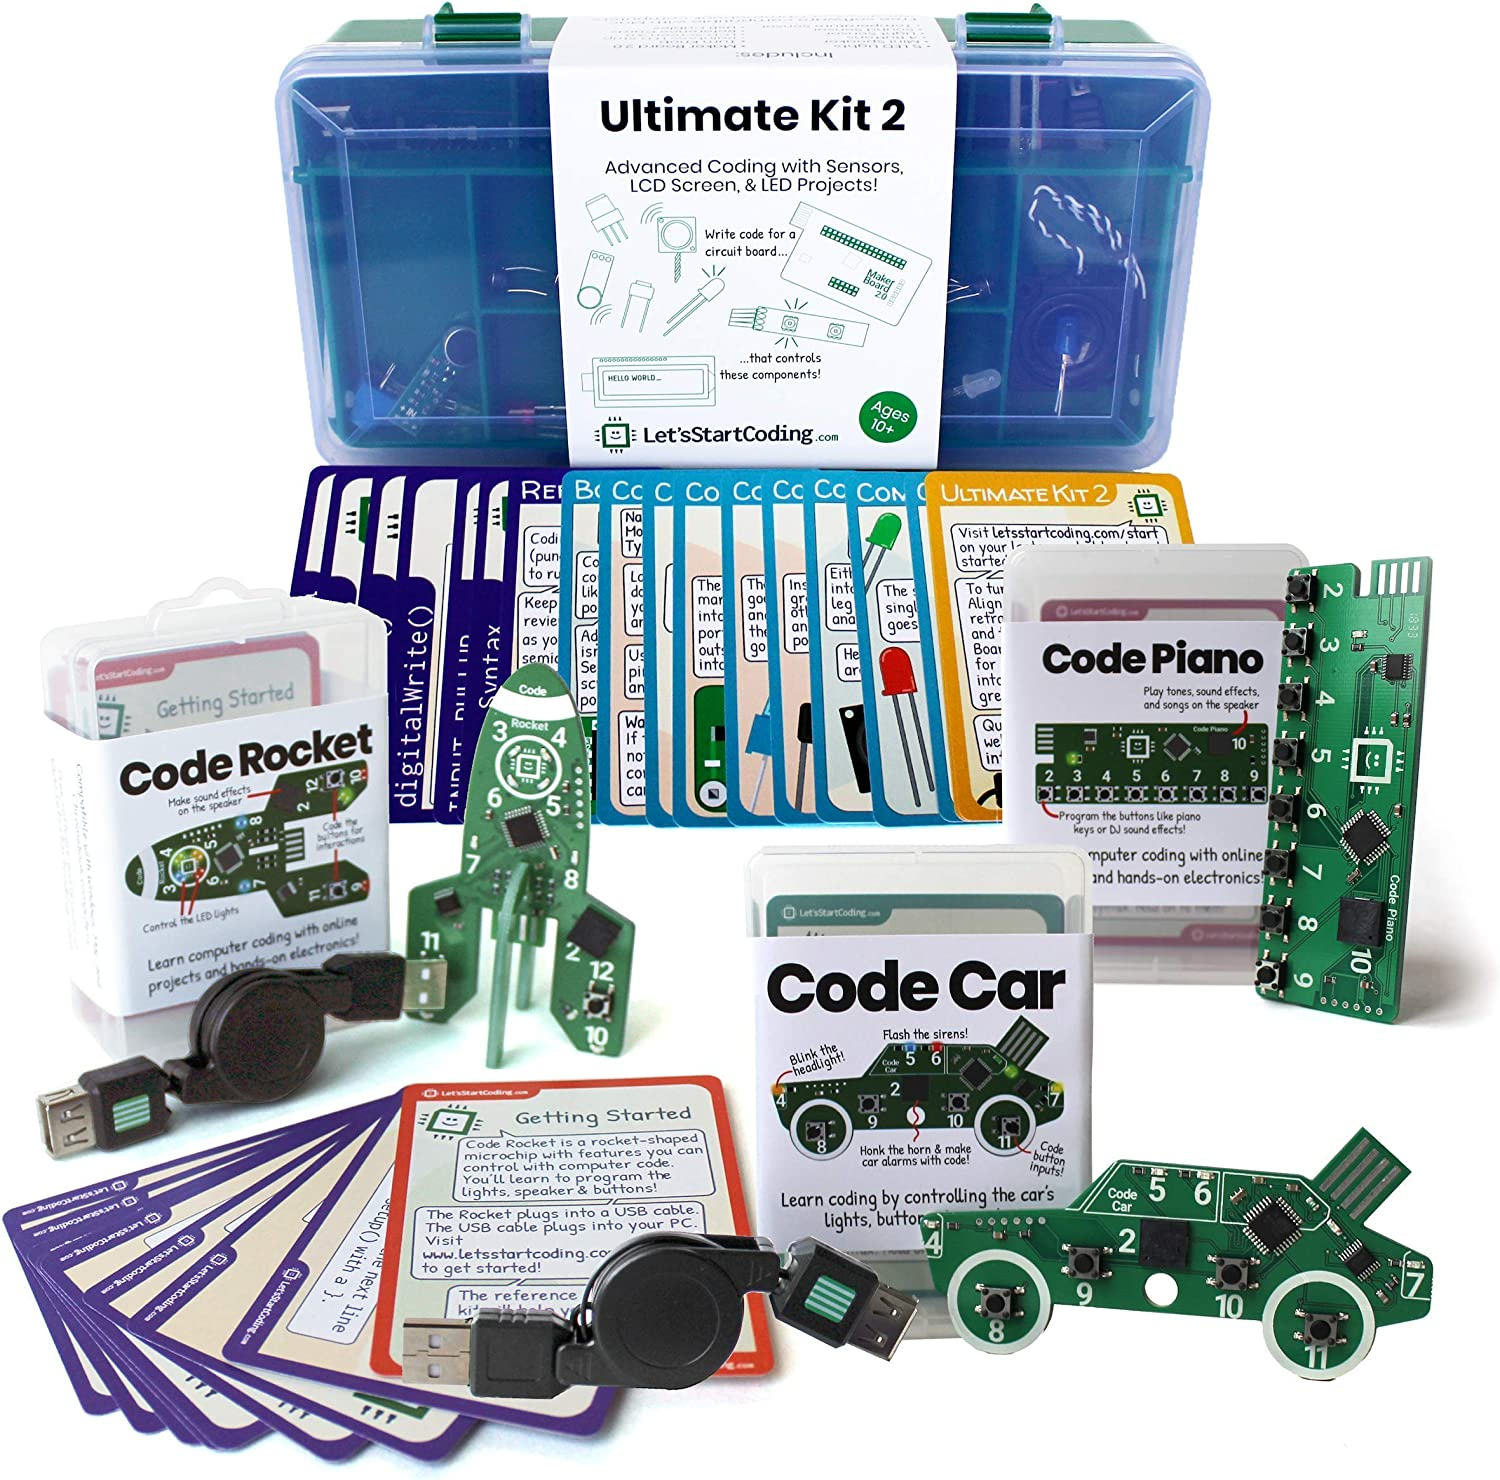 Ultimate Coding Bundle: 4 Coding and Circuitry Kits to Introduce Boys and Girls Age 8-12 to Real Typed Coding and STEM Skills at Home.